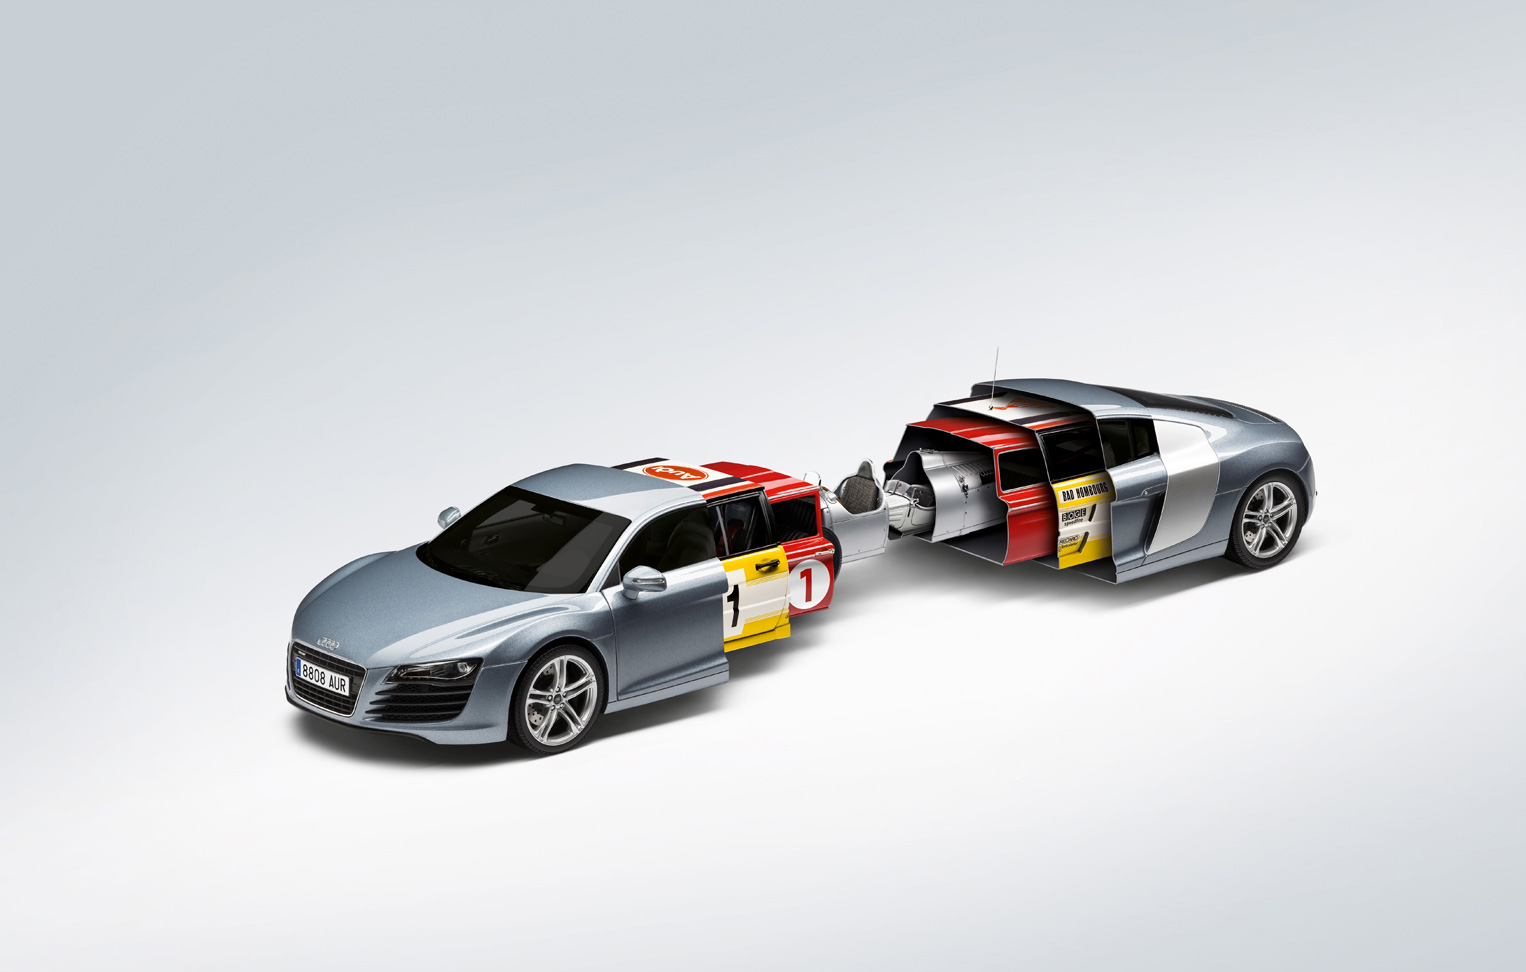 http://www.autoevolution.com/images/news/audi-r8-turns-into-matryoshka-doll-for-new-print-ad-34695_1.jpg